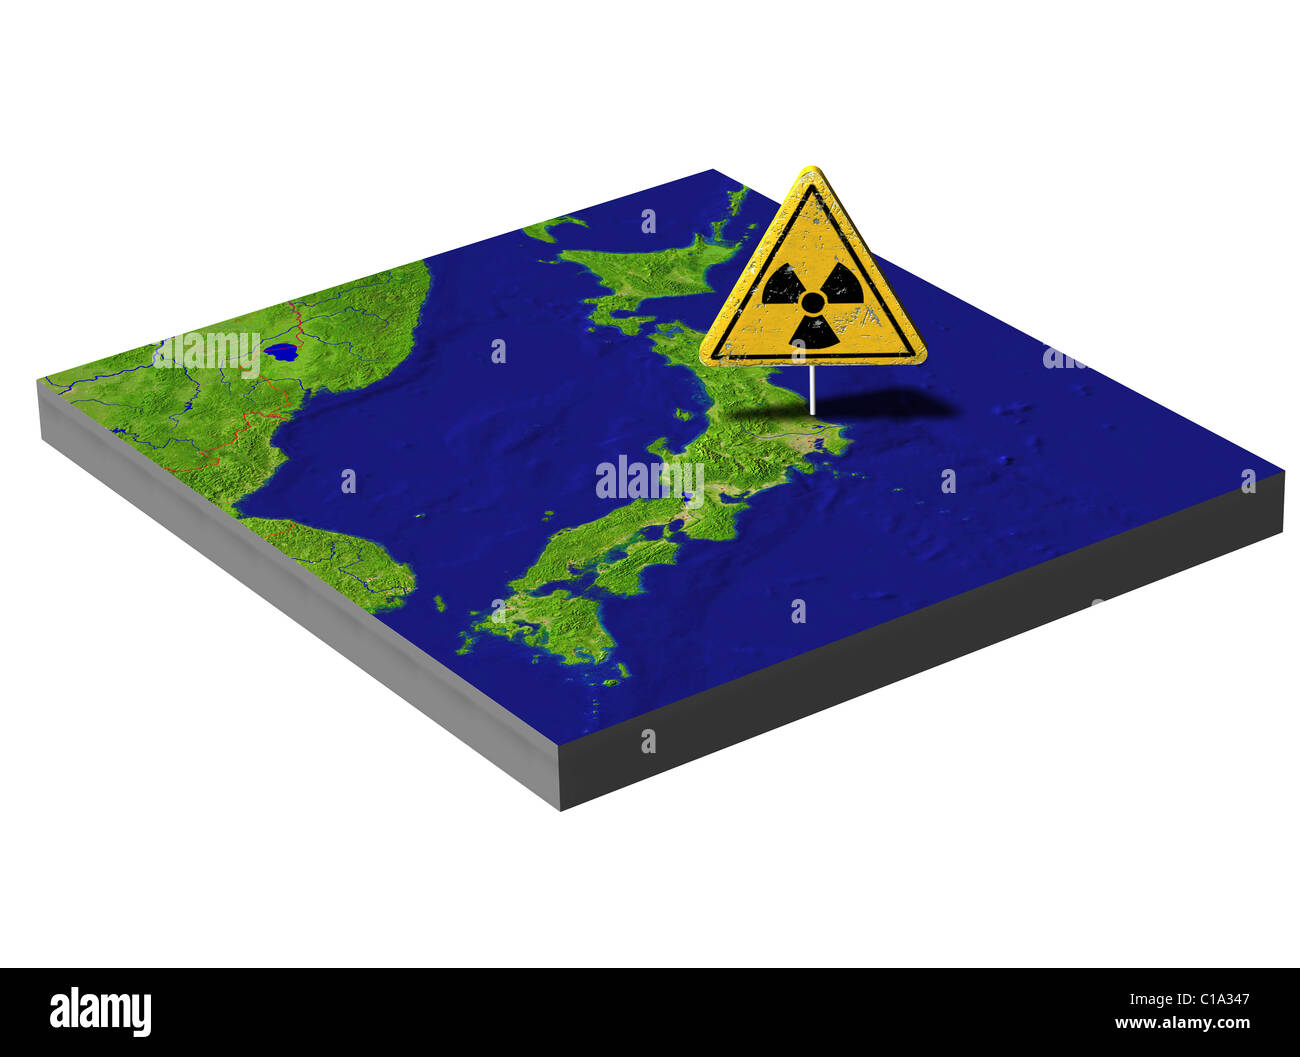 Symbolic image Nuclear disaster march 2011 japan Tokai - Stock Image